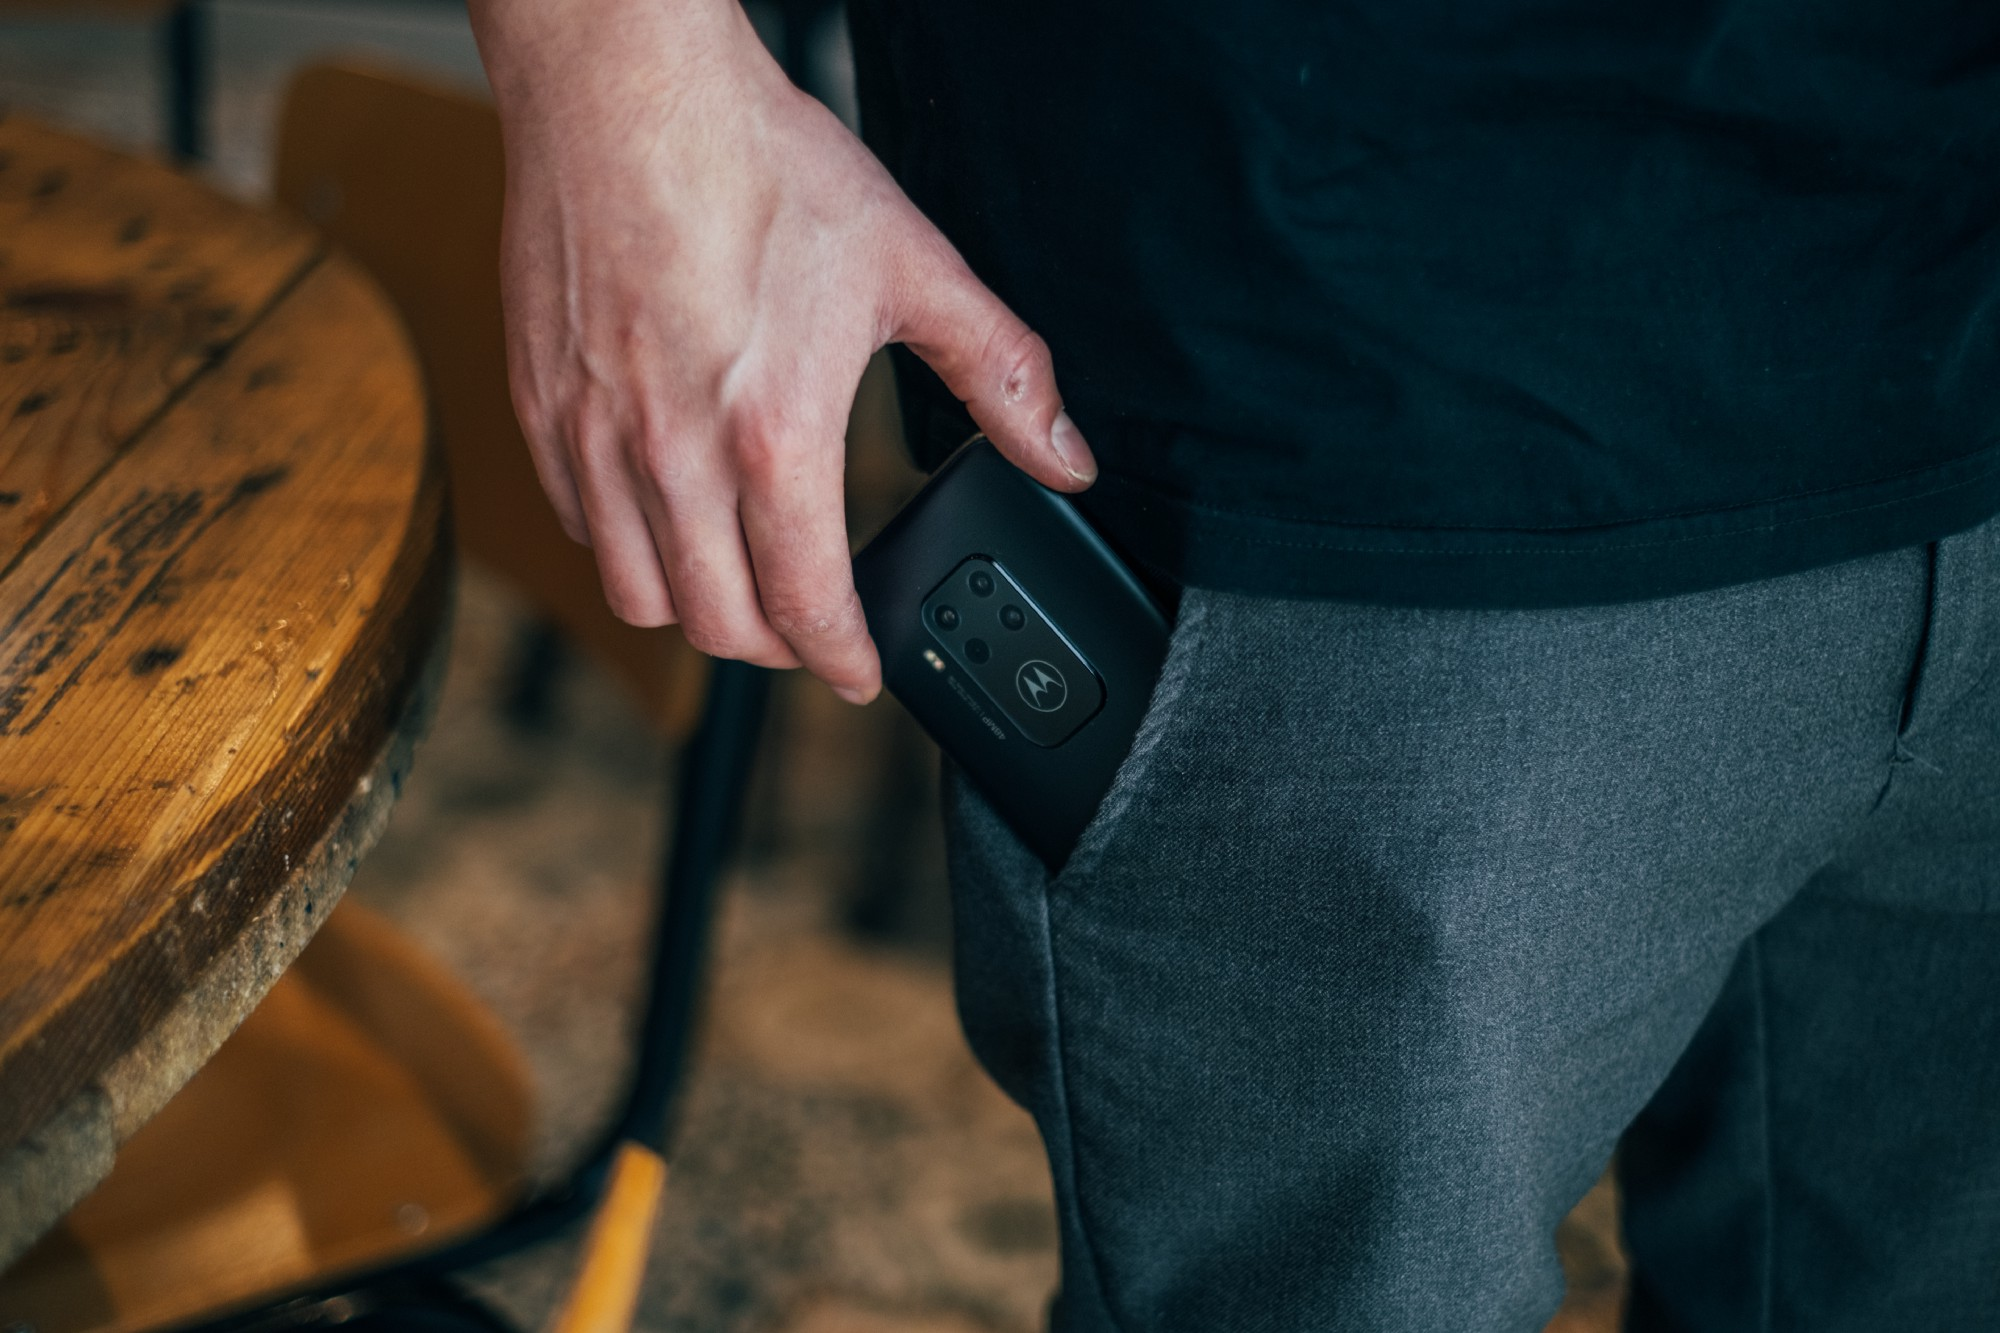 A person pulling out a phone from their pocket